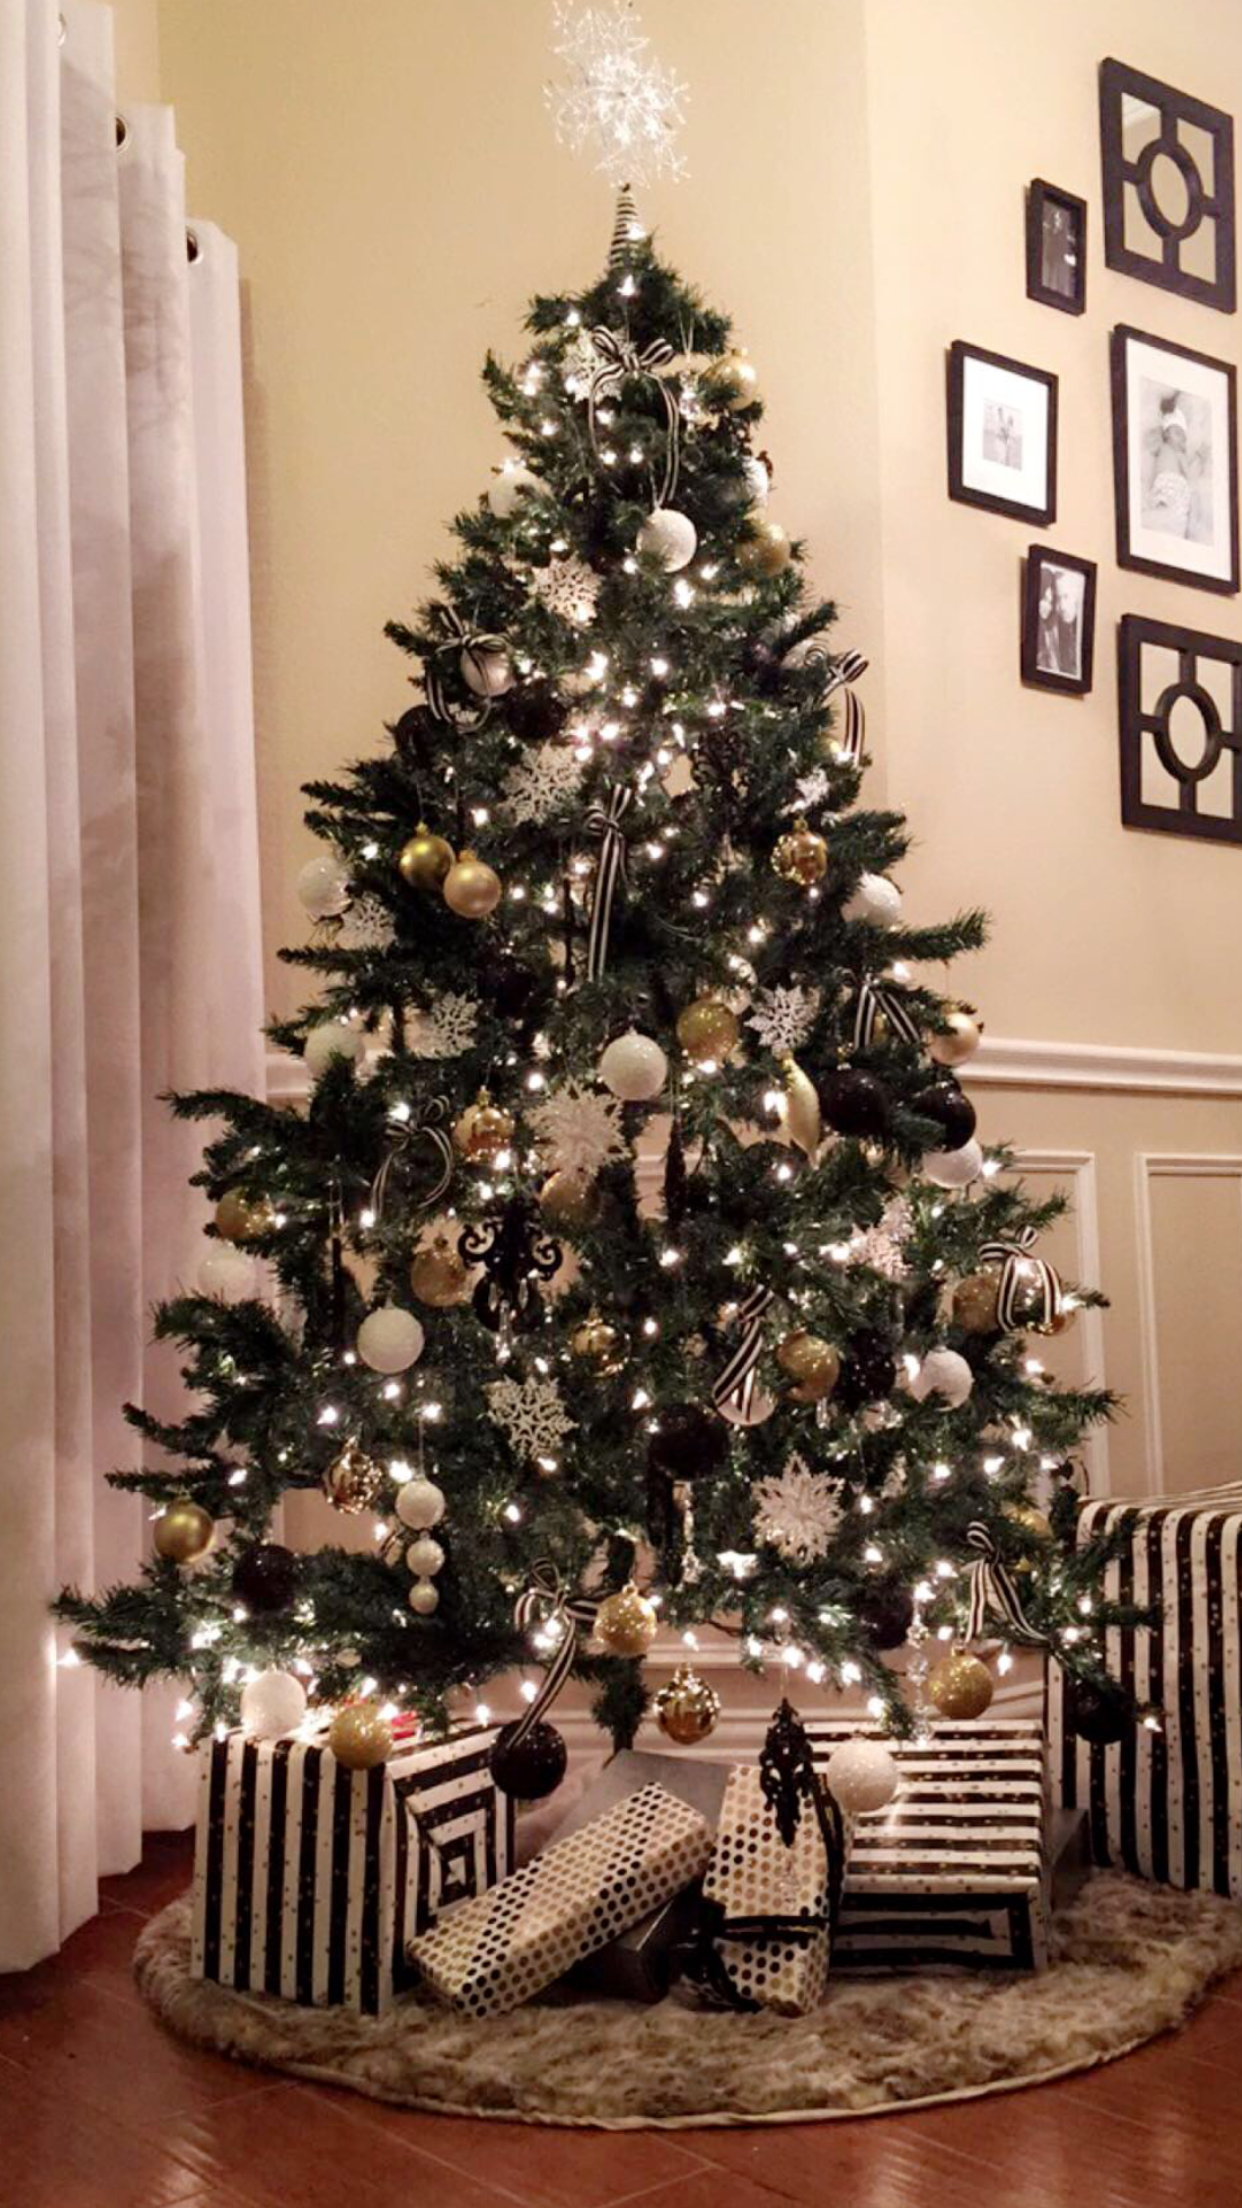 Black White And Gold Christmas Tree Really Had Fun With This One Gold Christmas Decorations Christmas Tree Inspiration White Christmas Tree Decorations